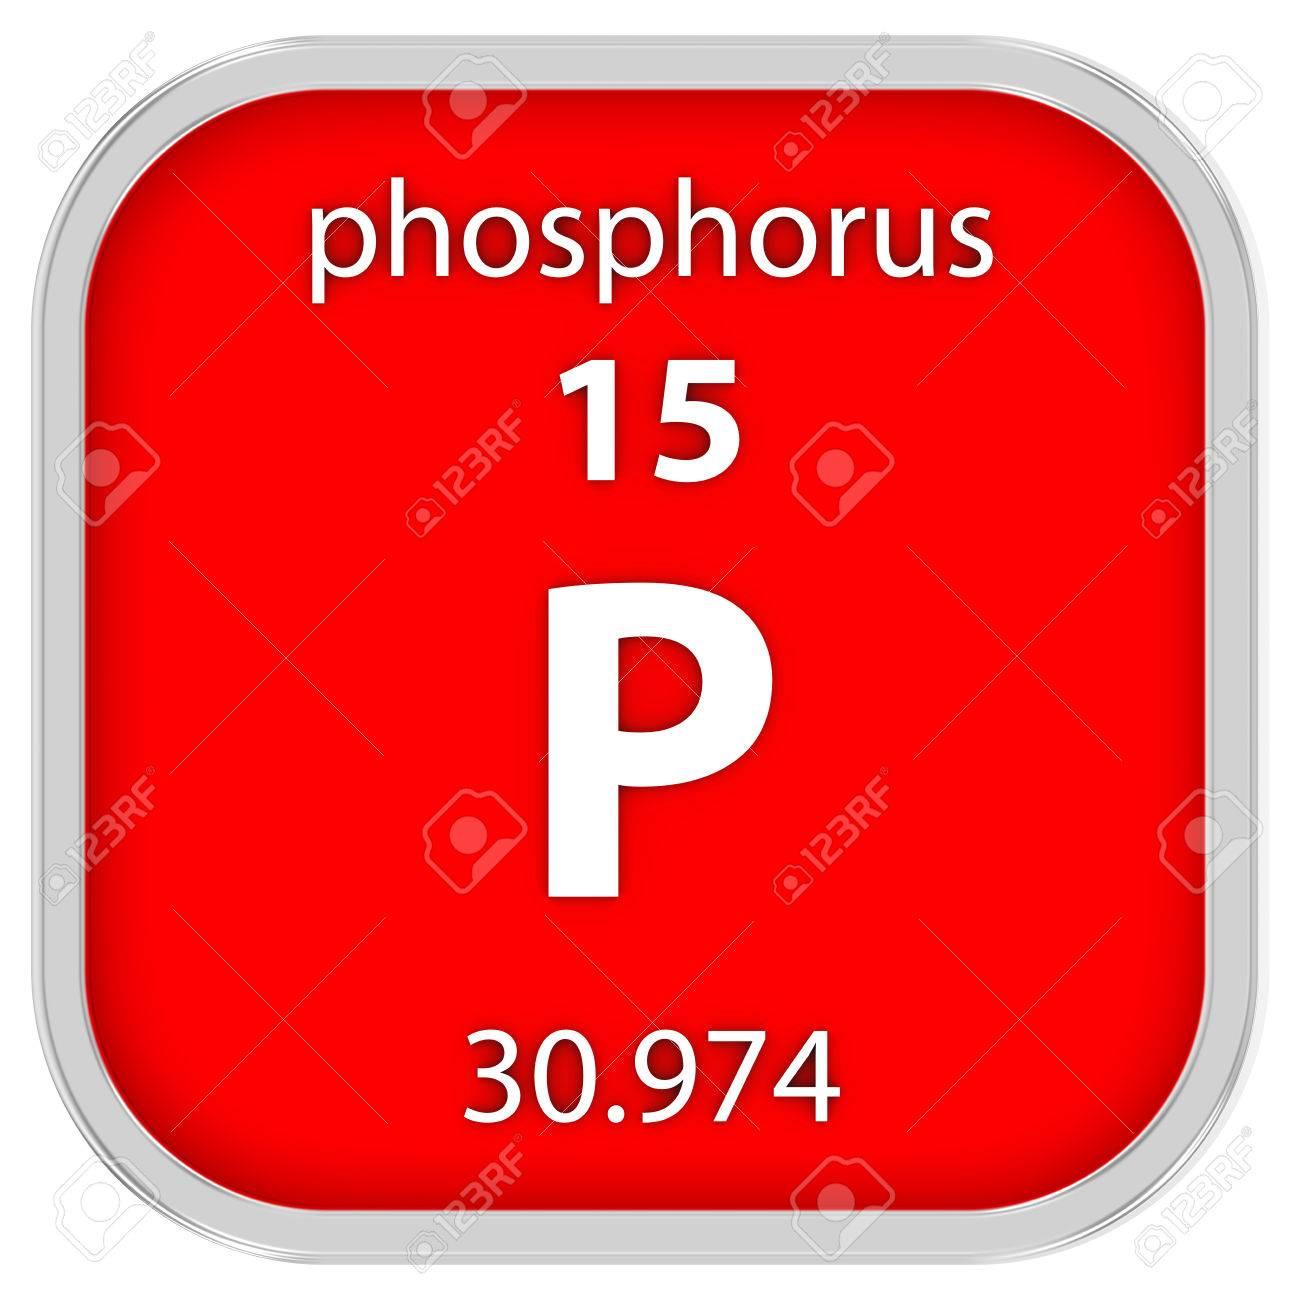 Phosphorus material on the periodic table stock photo picture and phosphorus material on the periodic table stock photo 41158888 gamestrikefo Image collections